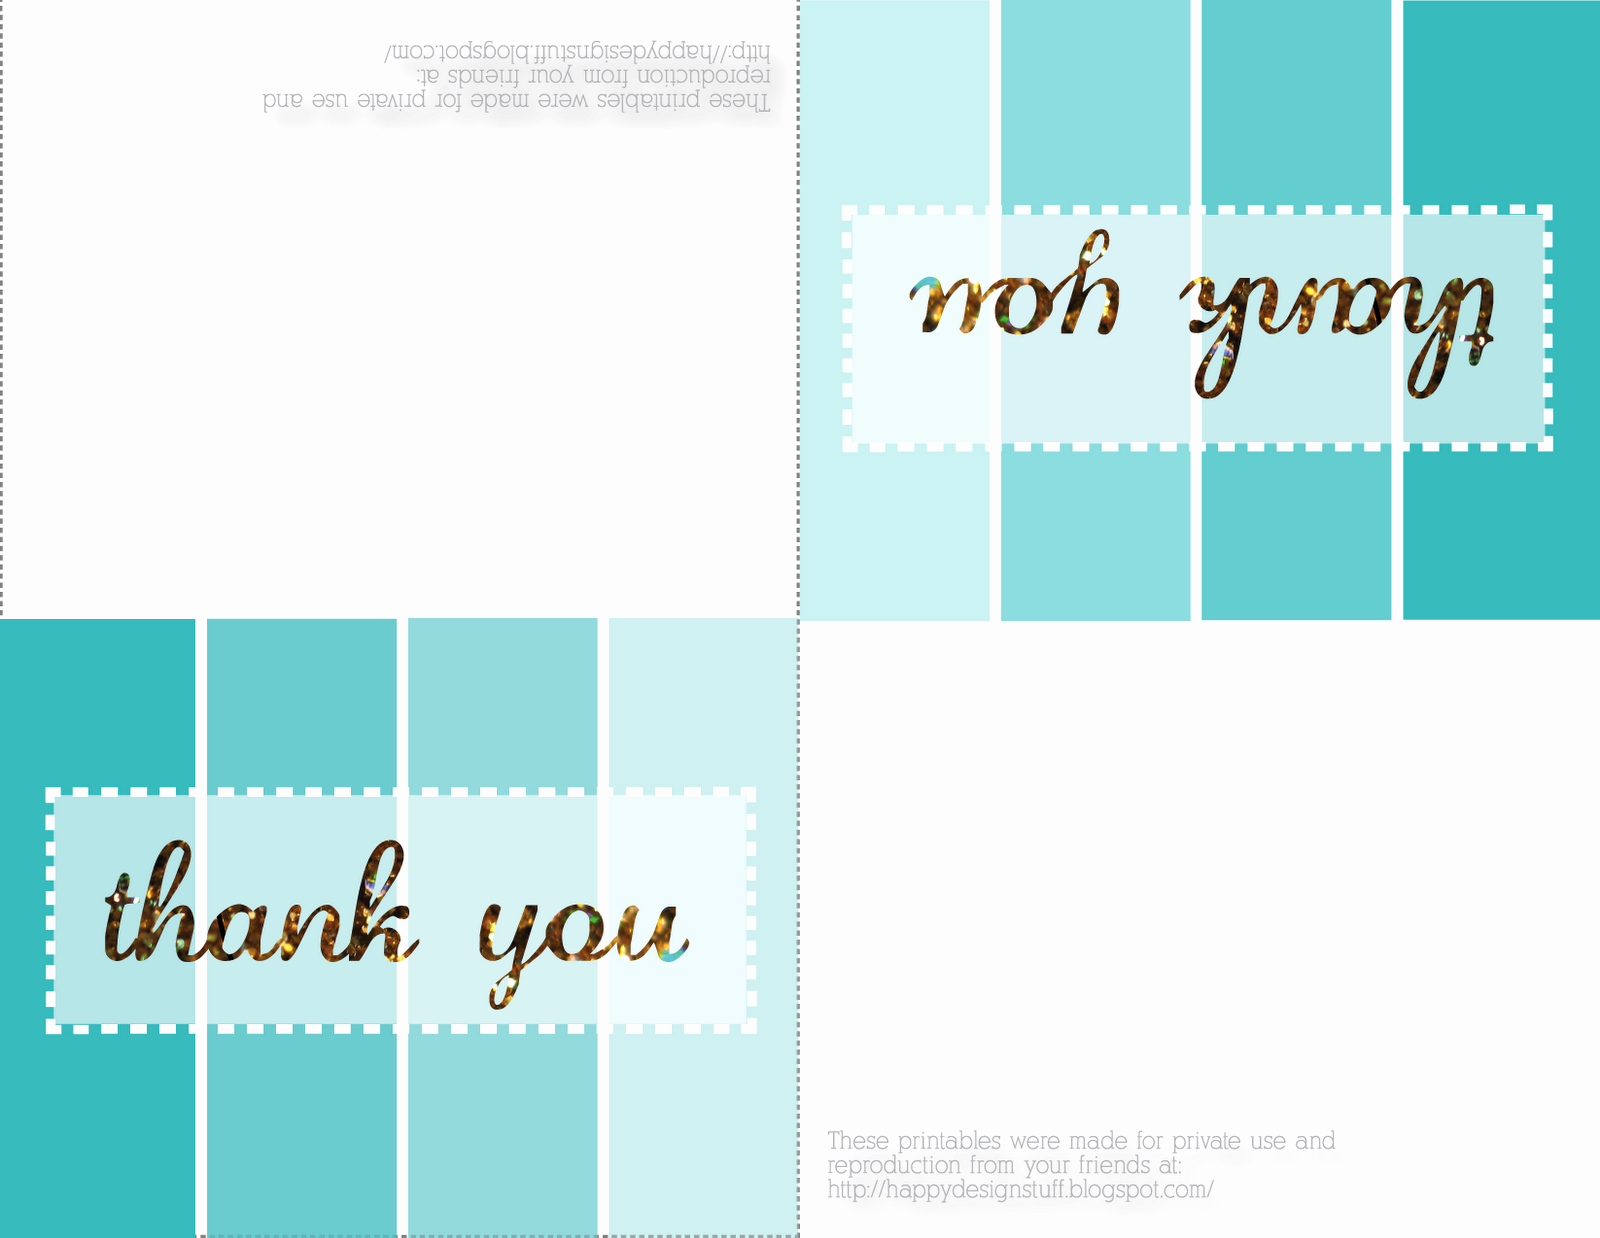 Free Thank You Cards Templates Unique Happy Design Stuff Free Printable Friday Thank You Cards